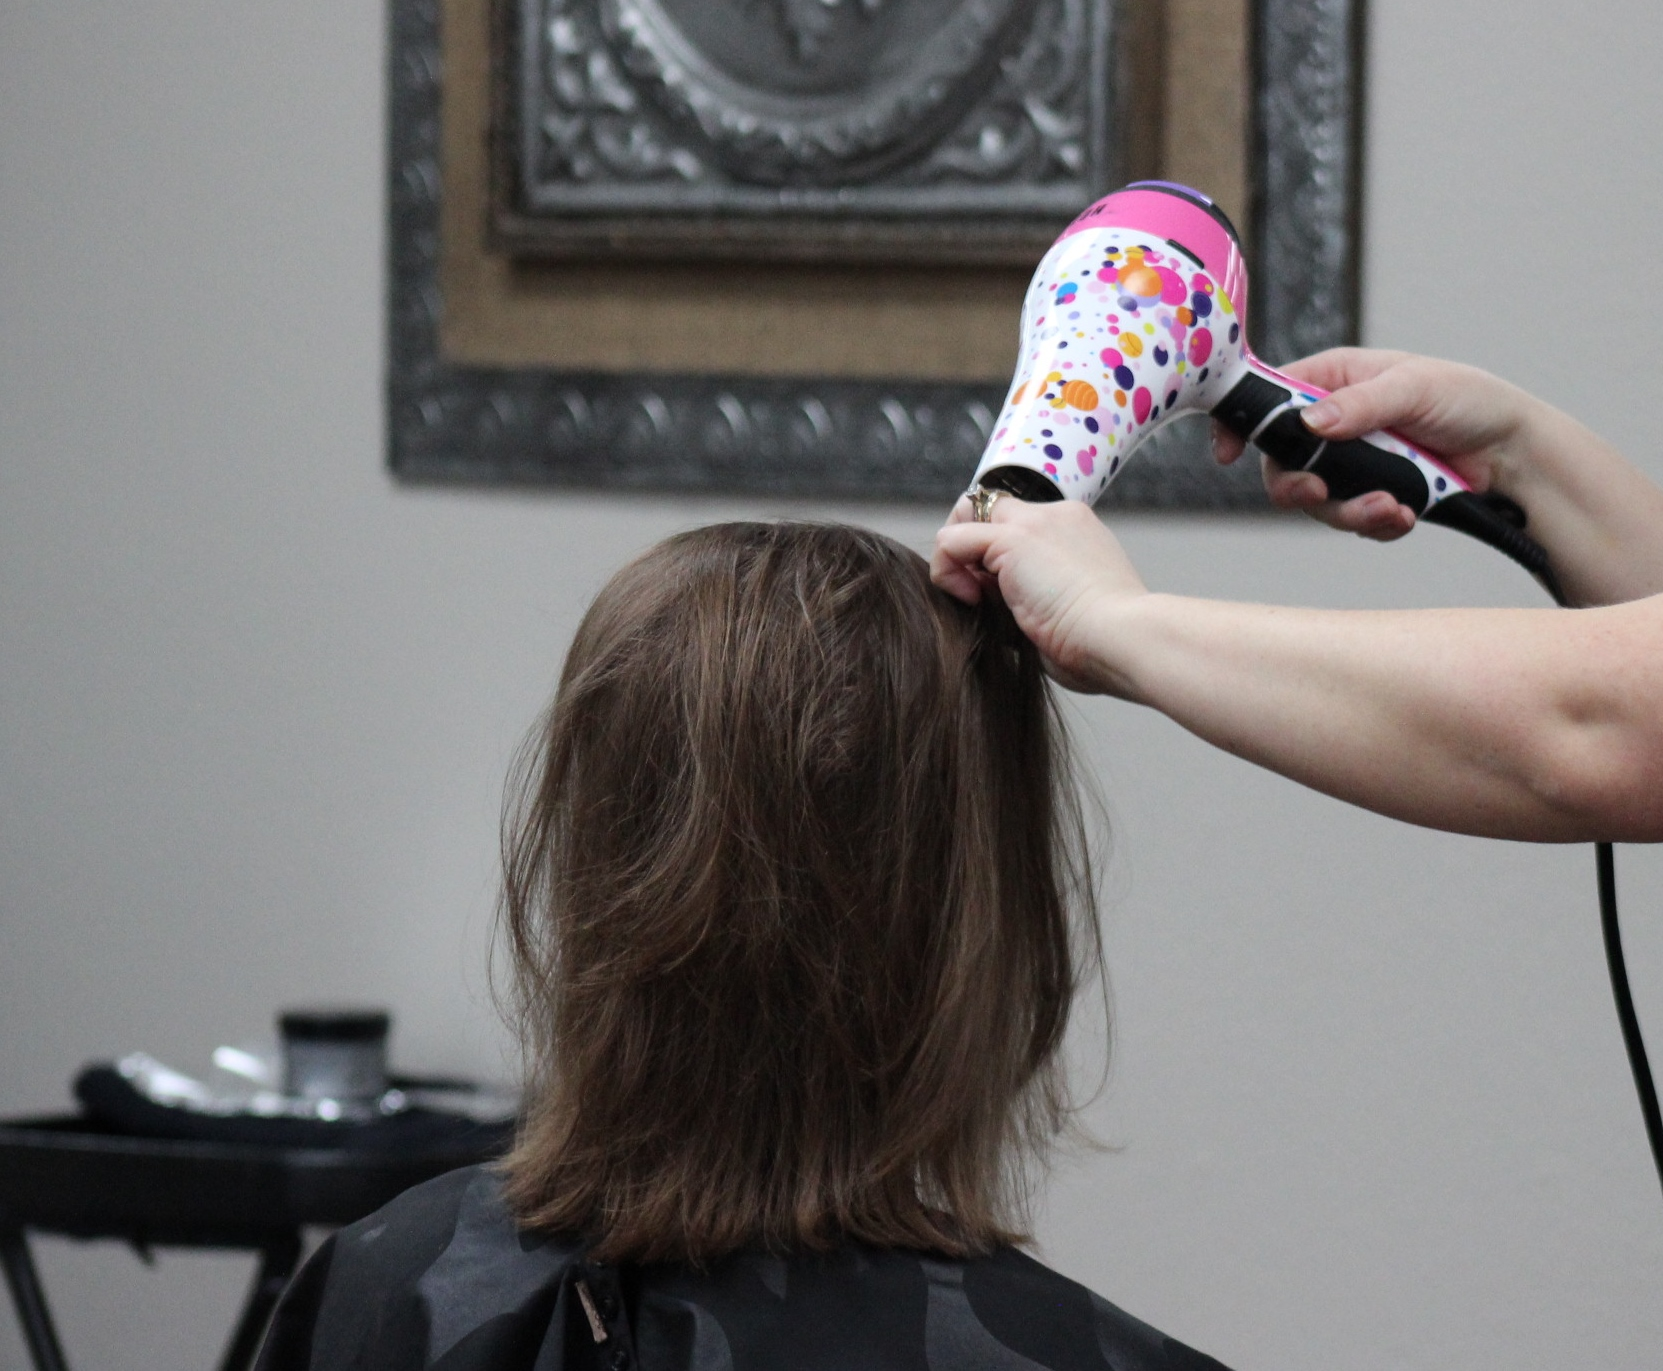 HAIR - Silhouettes Salon and Spa | Bellingham, WA | Skincare, Haircare, Massage, Makeup, Products